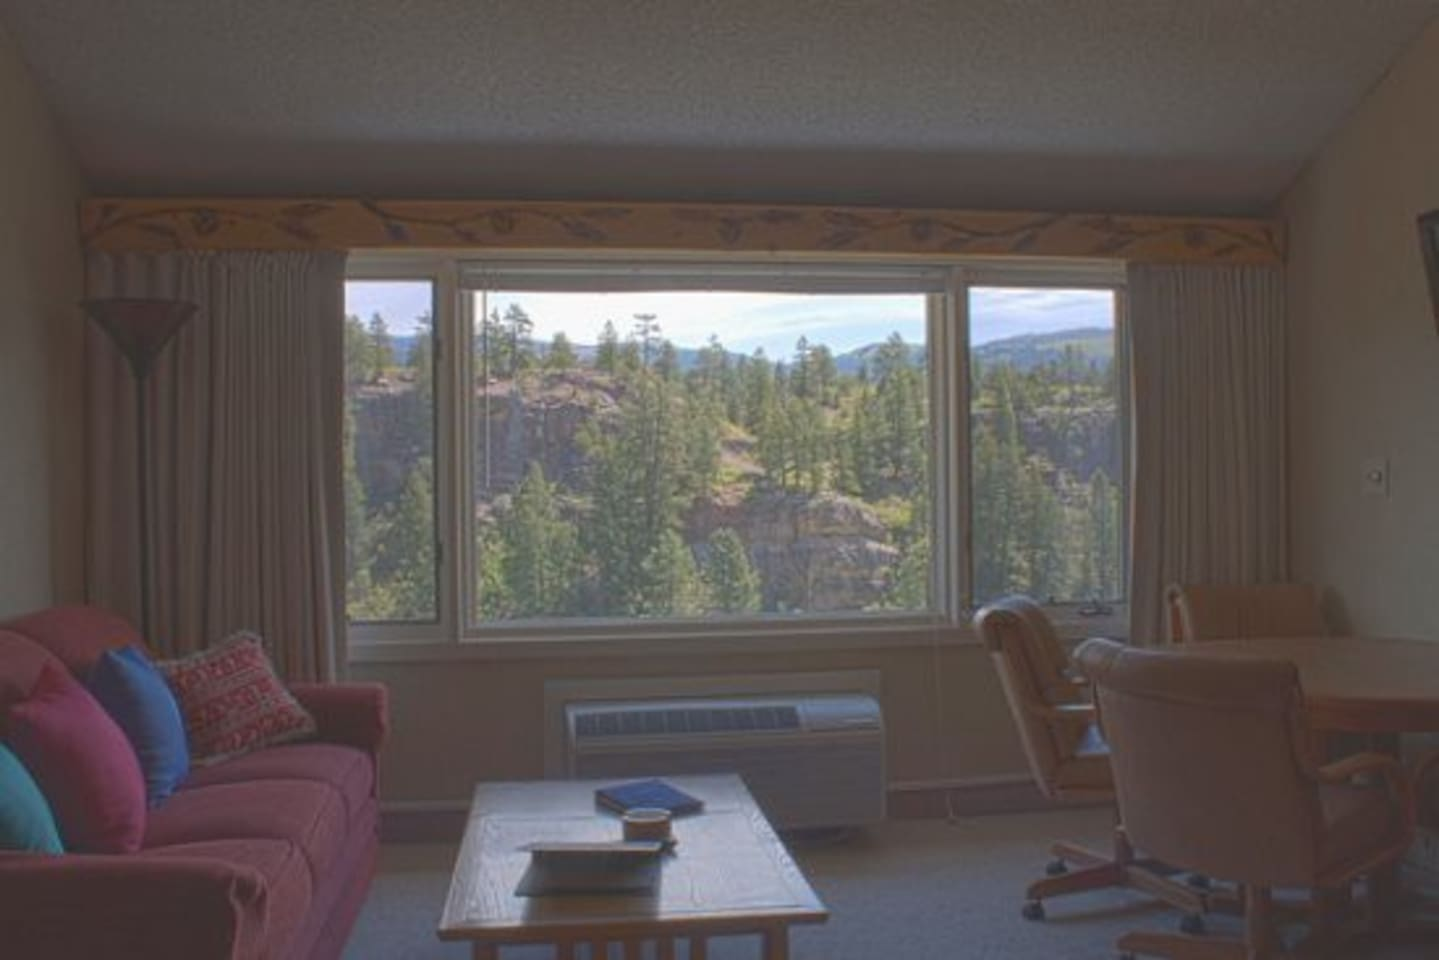 Tamarron Vacation Rentals 510 - Loft Unit with 1 Queen bed down and 2 Twins up - Durango, Colorado